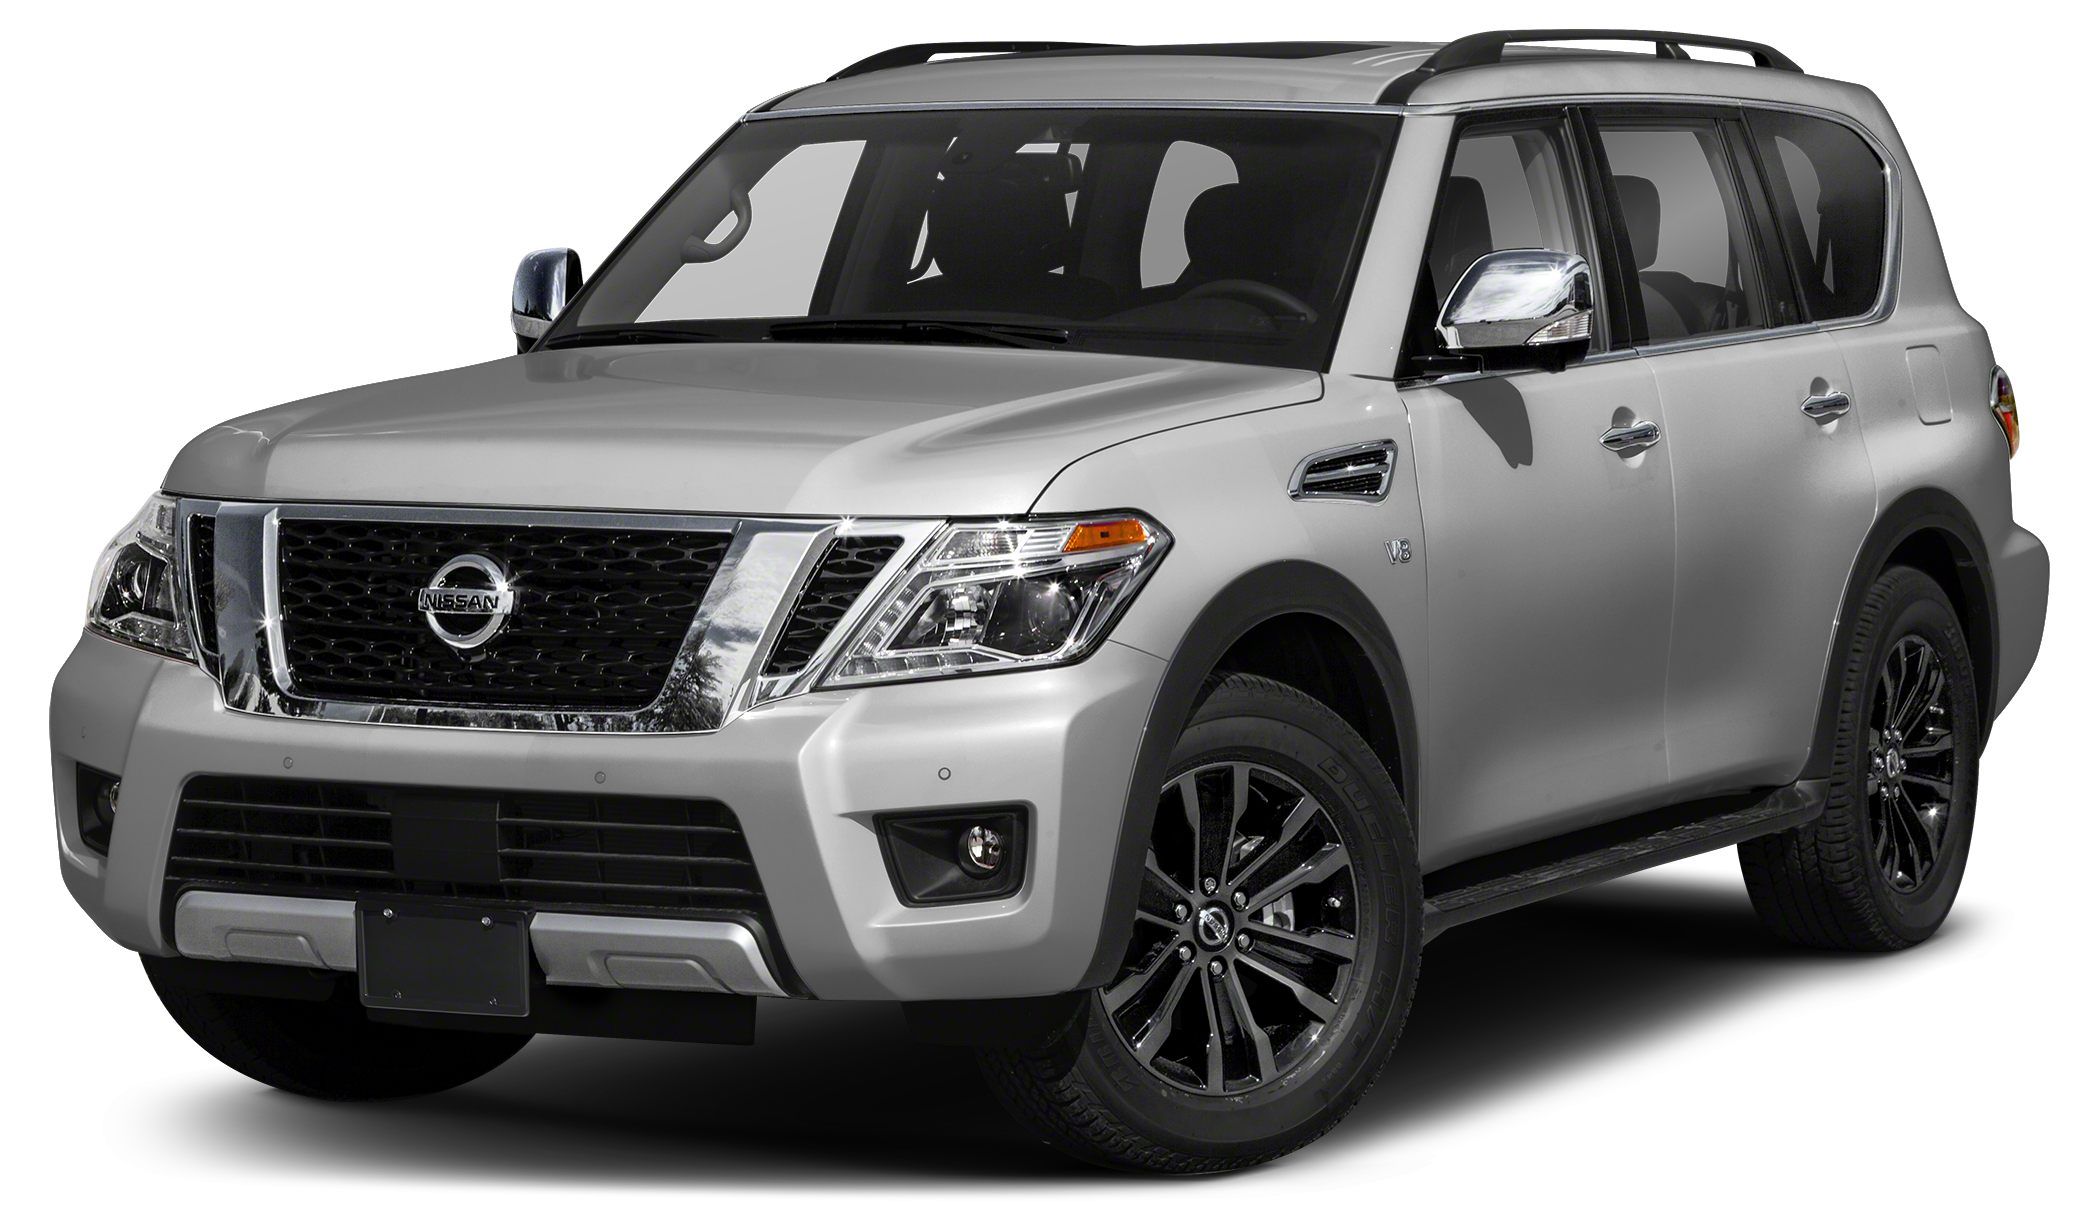 2017 Nissan Armada Platinum This 2017 Nissan ARMADA Platinum will sell fast Navigation Blueto